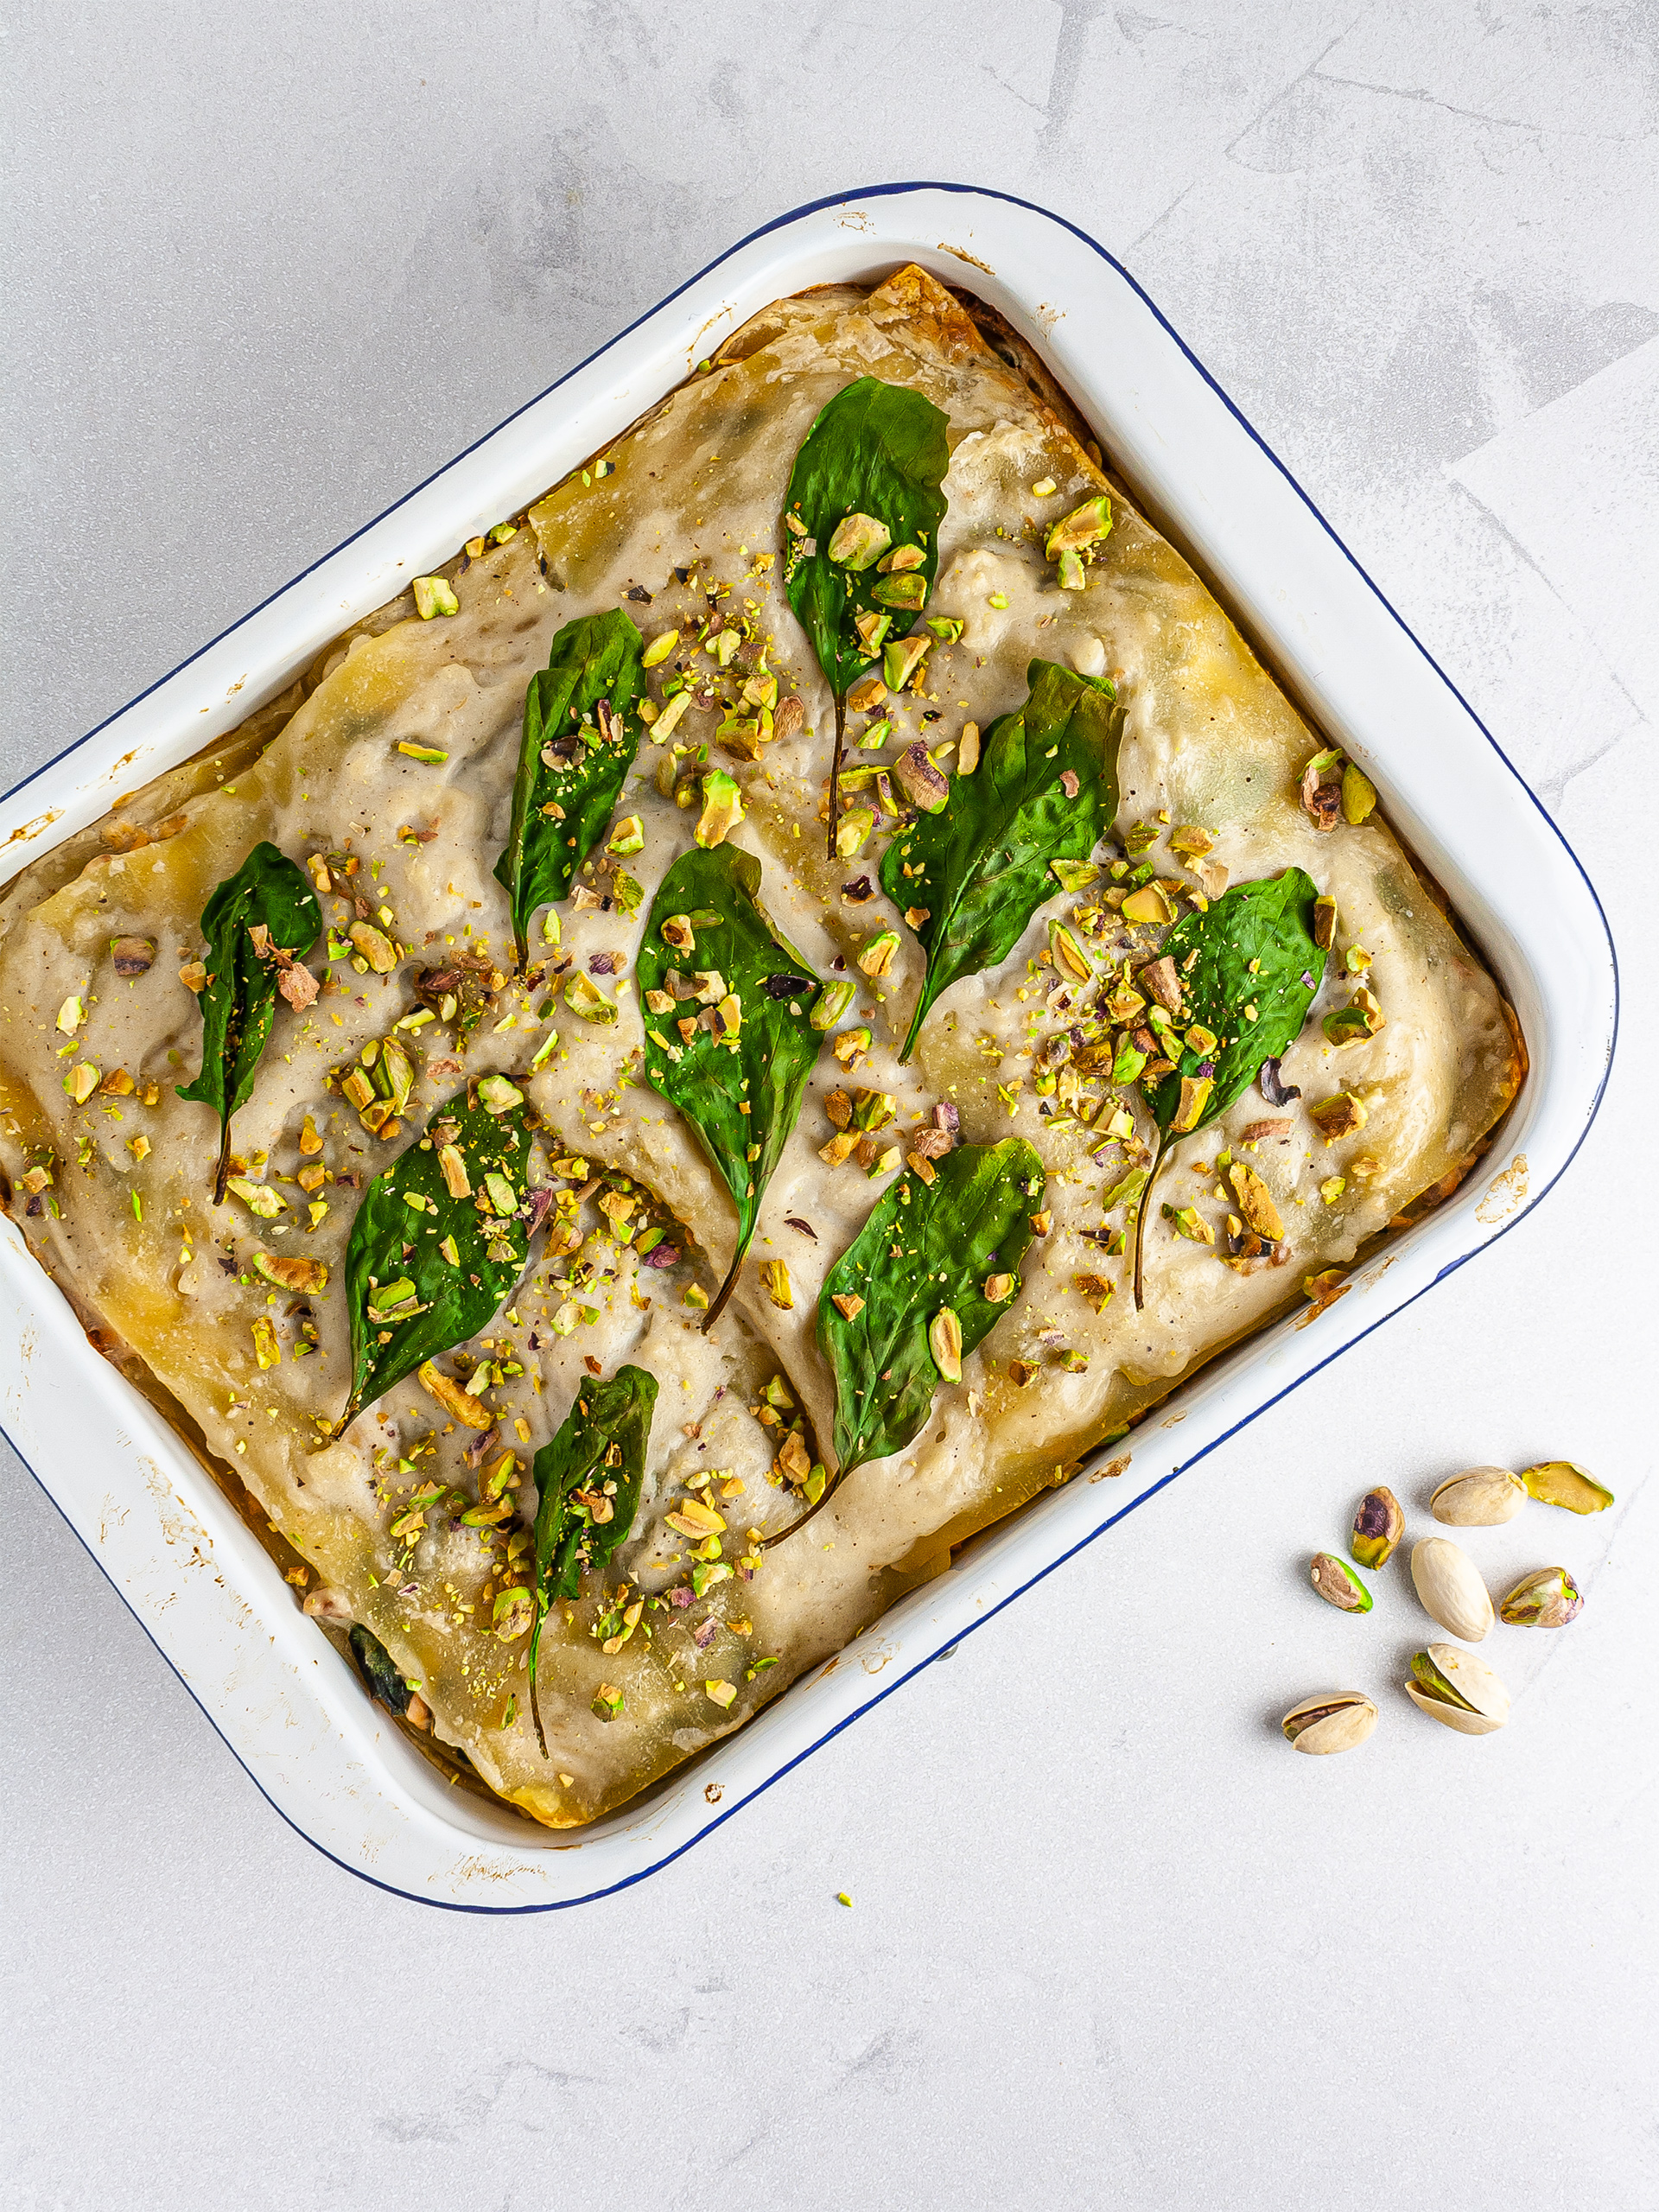 Baked spinach salmon lasagna topped with pistachio nuts